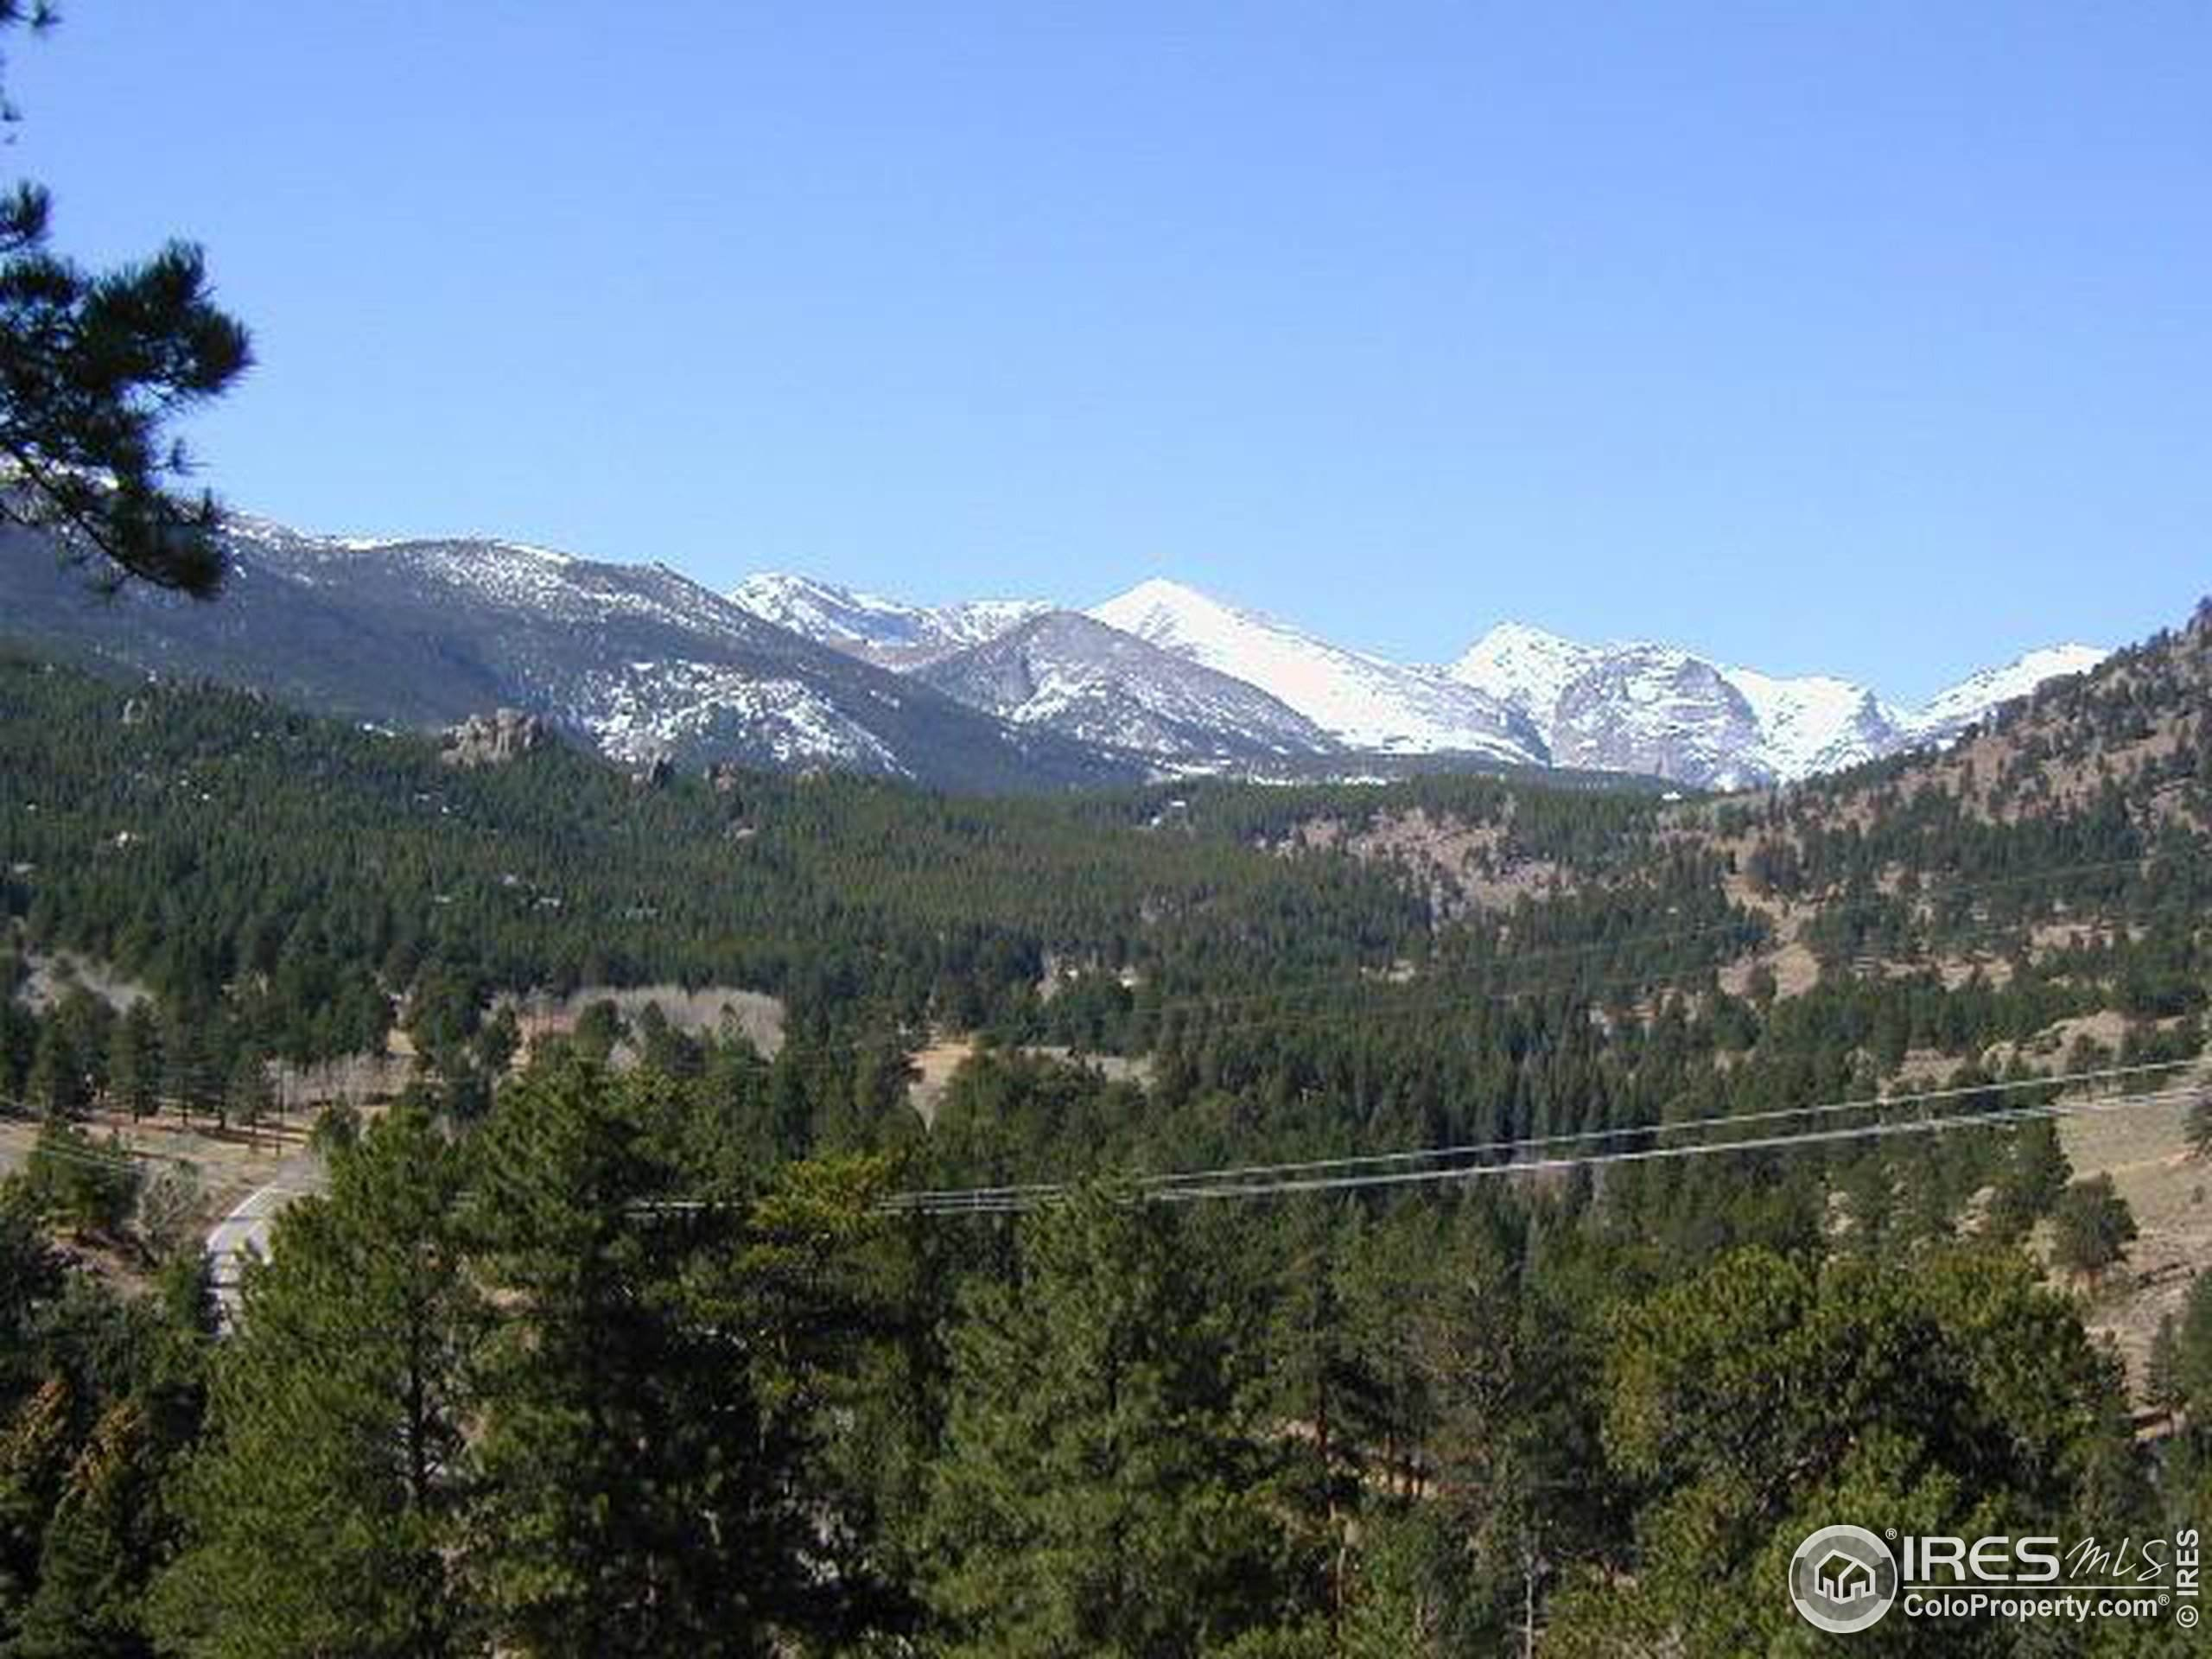 7103 White River Ct, Timnath, CO 80547 (MLS #866730) :: Bliss Realty Group